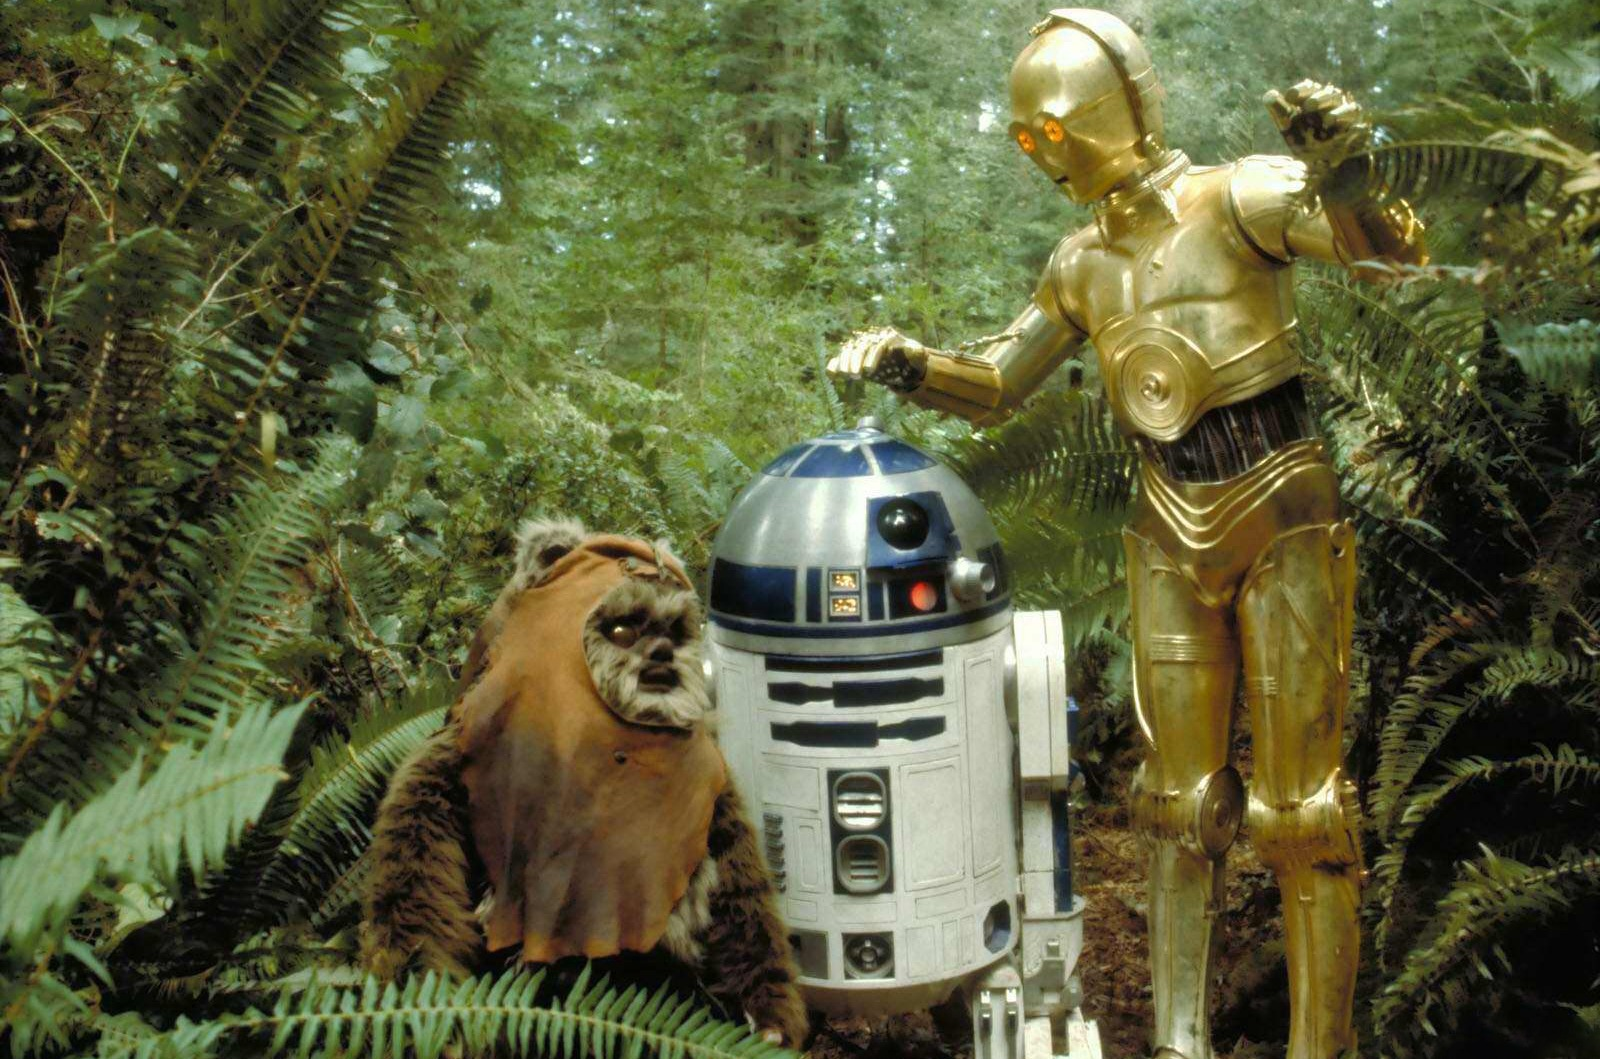 Wicket the Ewok, Artoo Detoo R2 D2, See Threepio C-3PO, Return of the Jedi